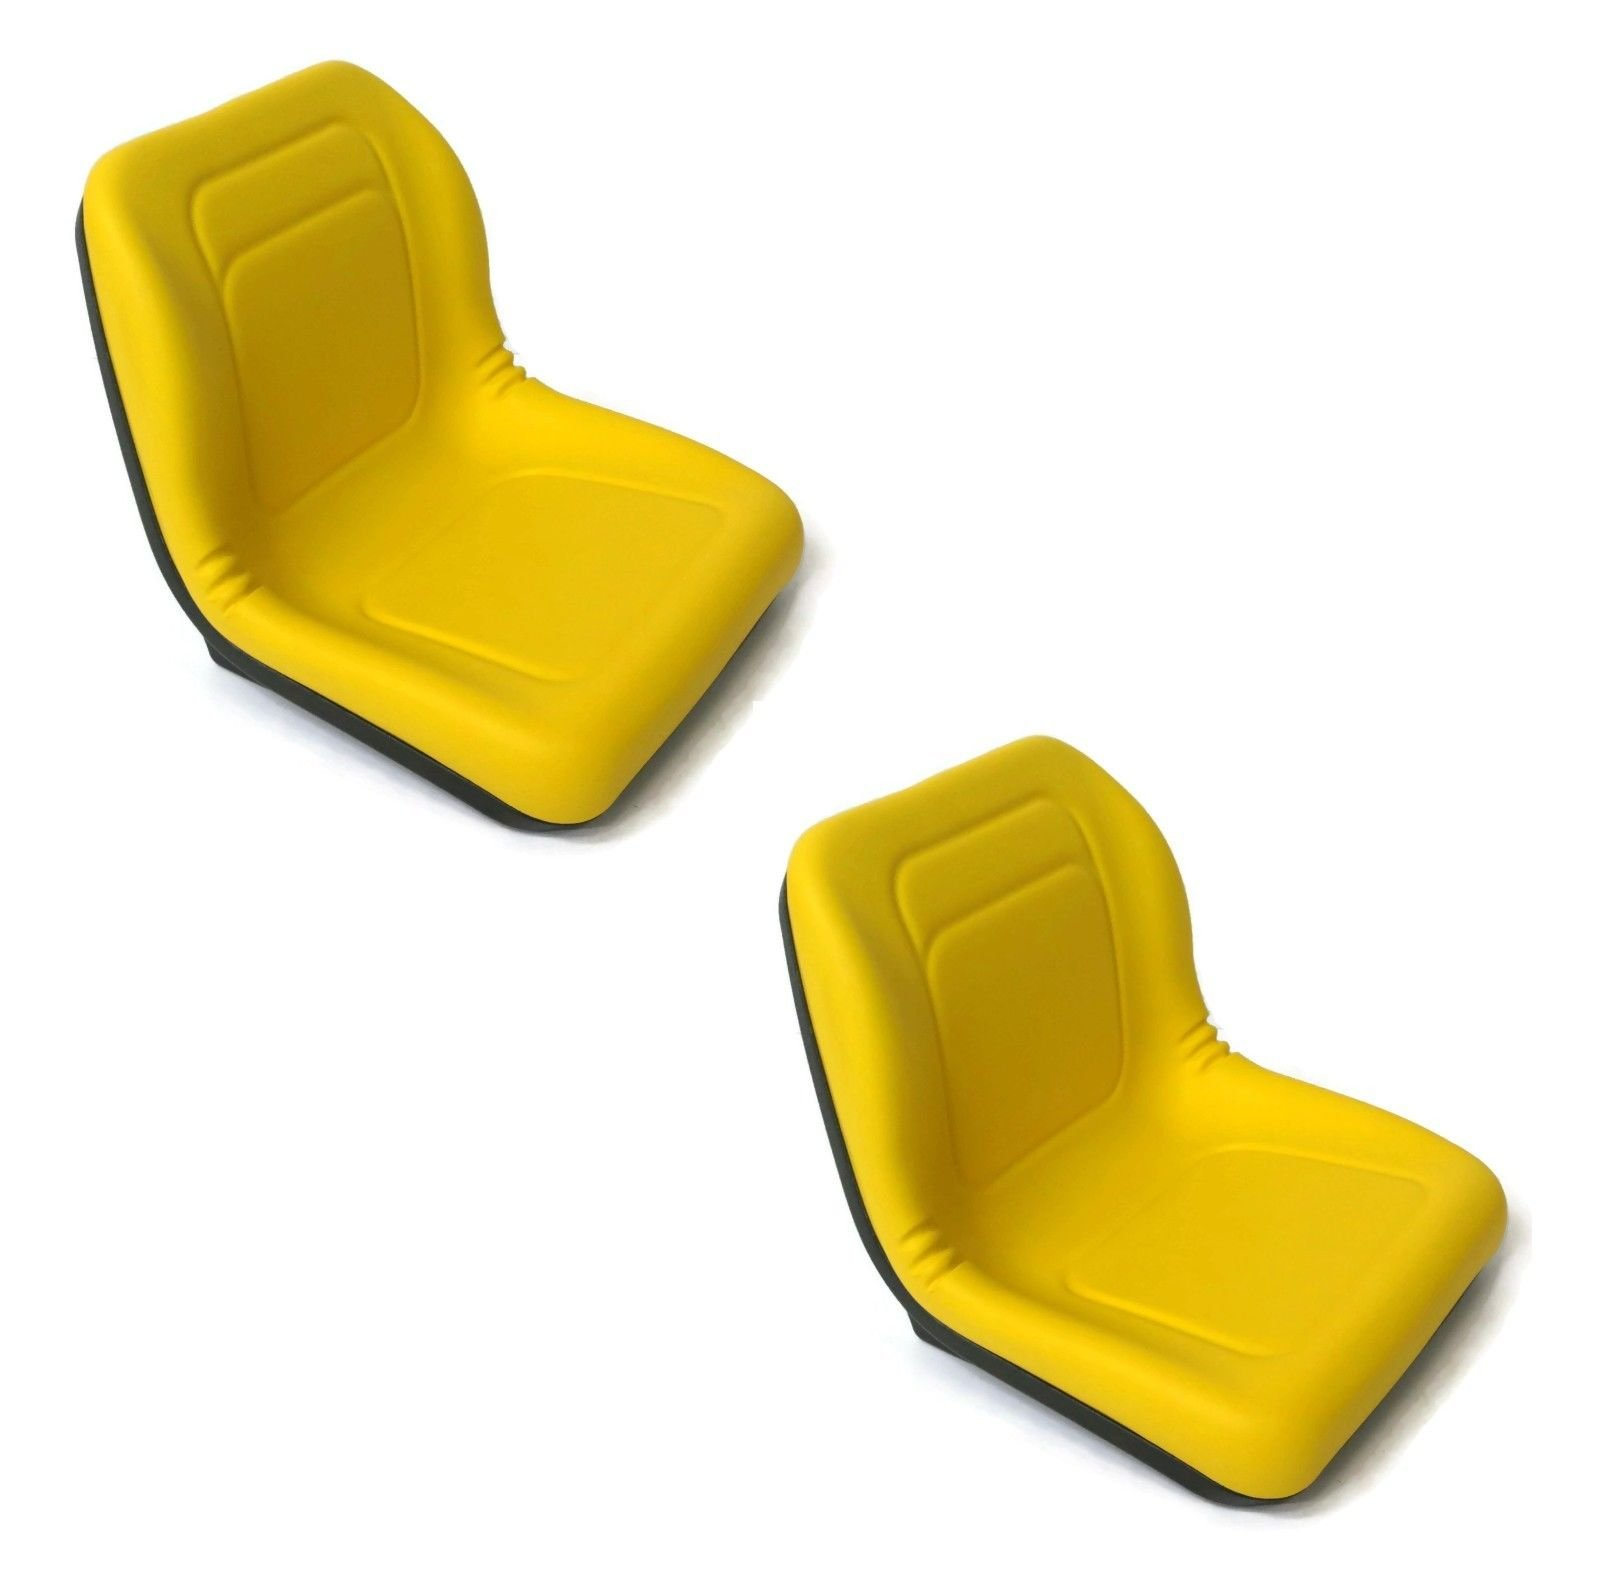 (2) HIGH BACK Seats John Deere Gator Gas & Diesel Models 4x2 4x4 HPX & TH 6x4 by The ROP Shop